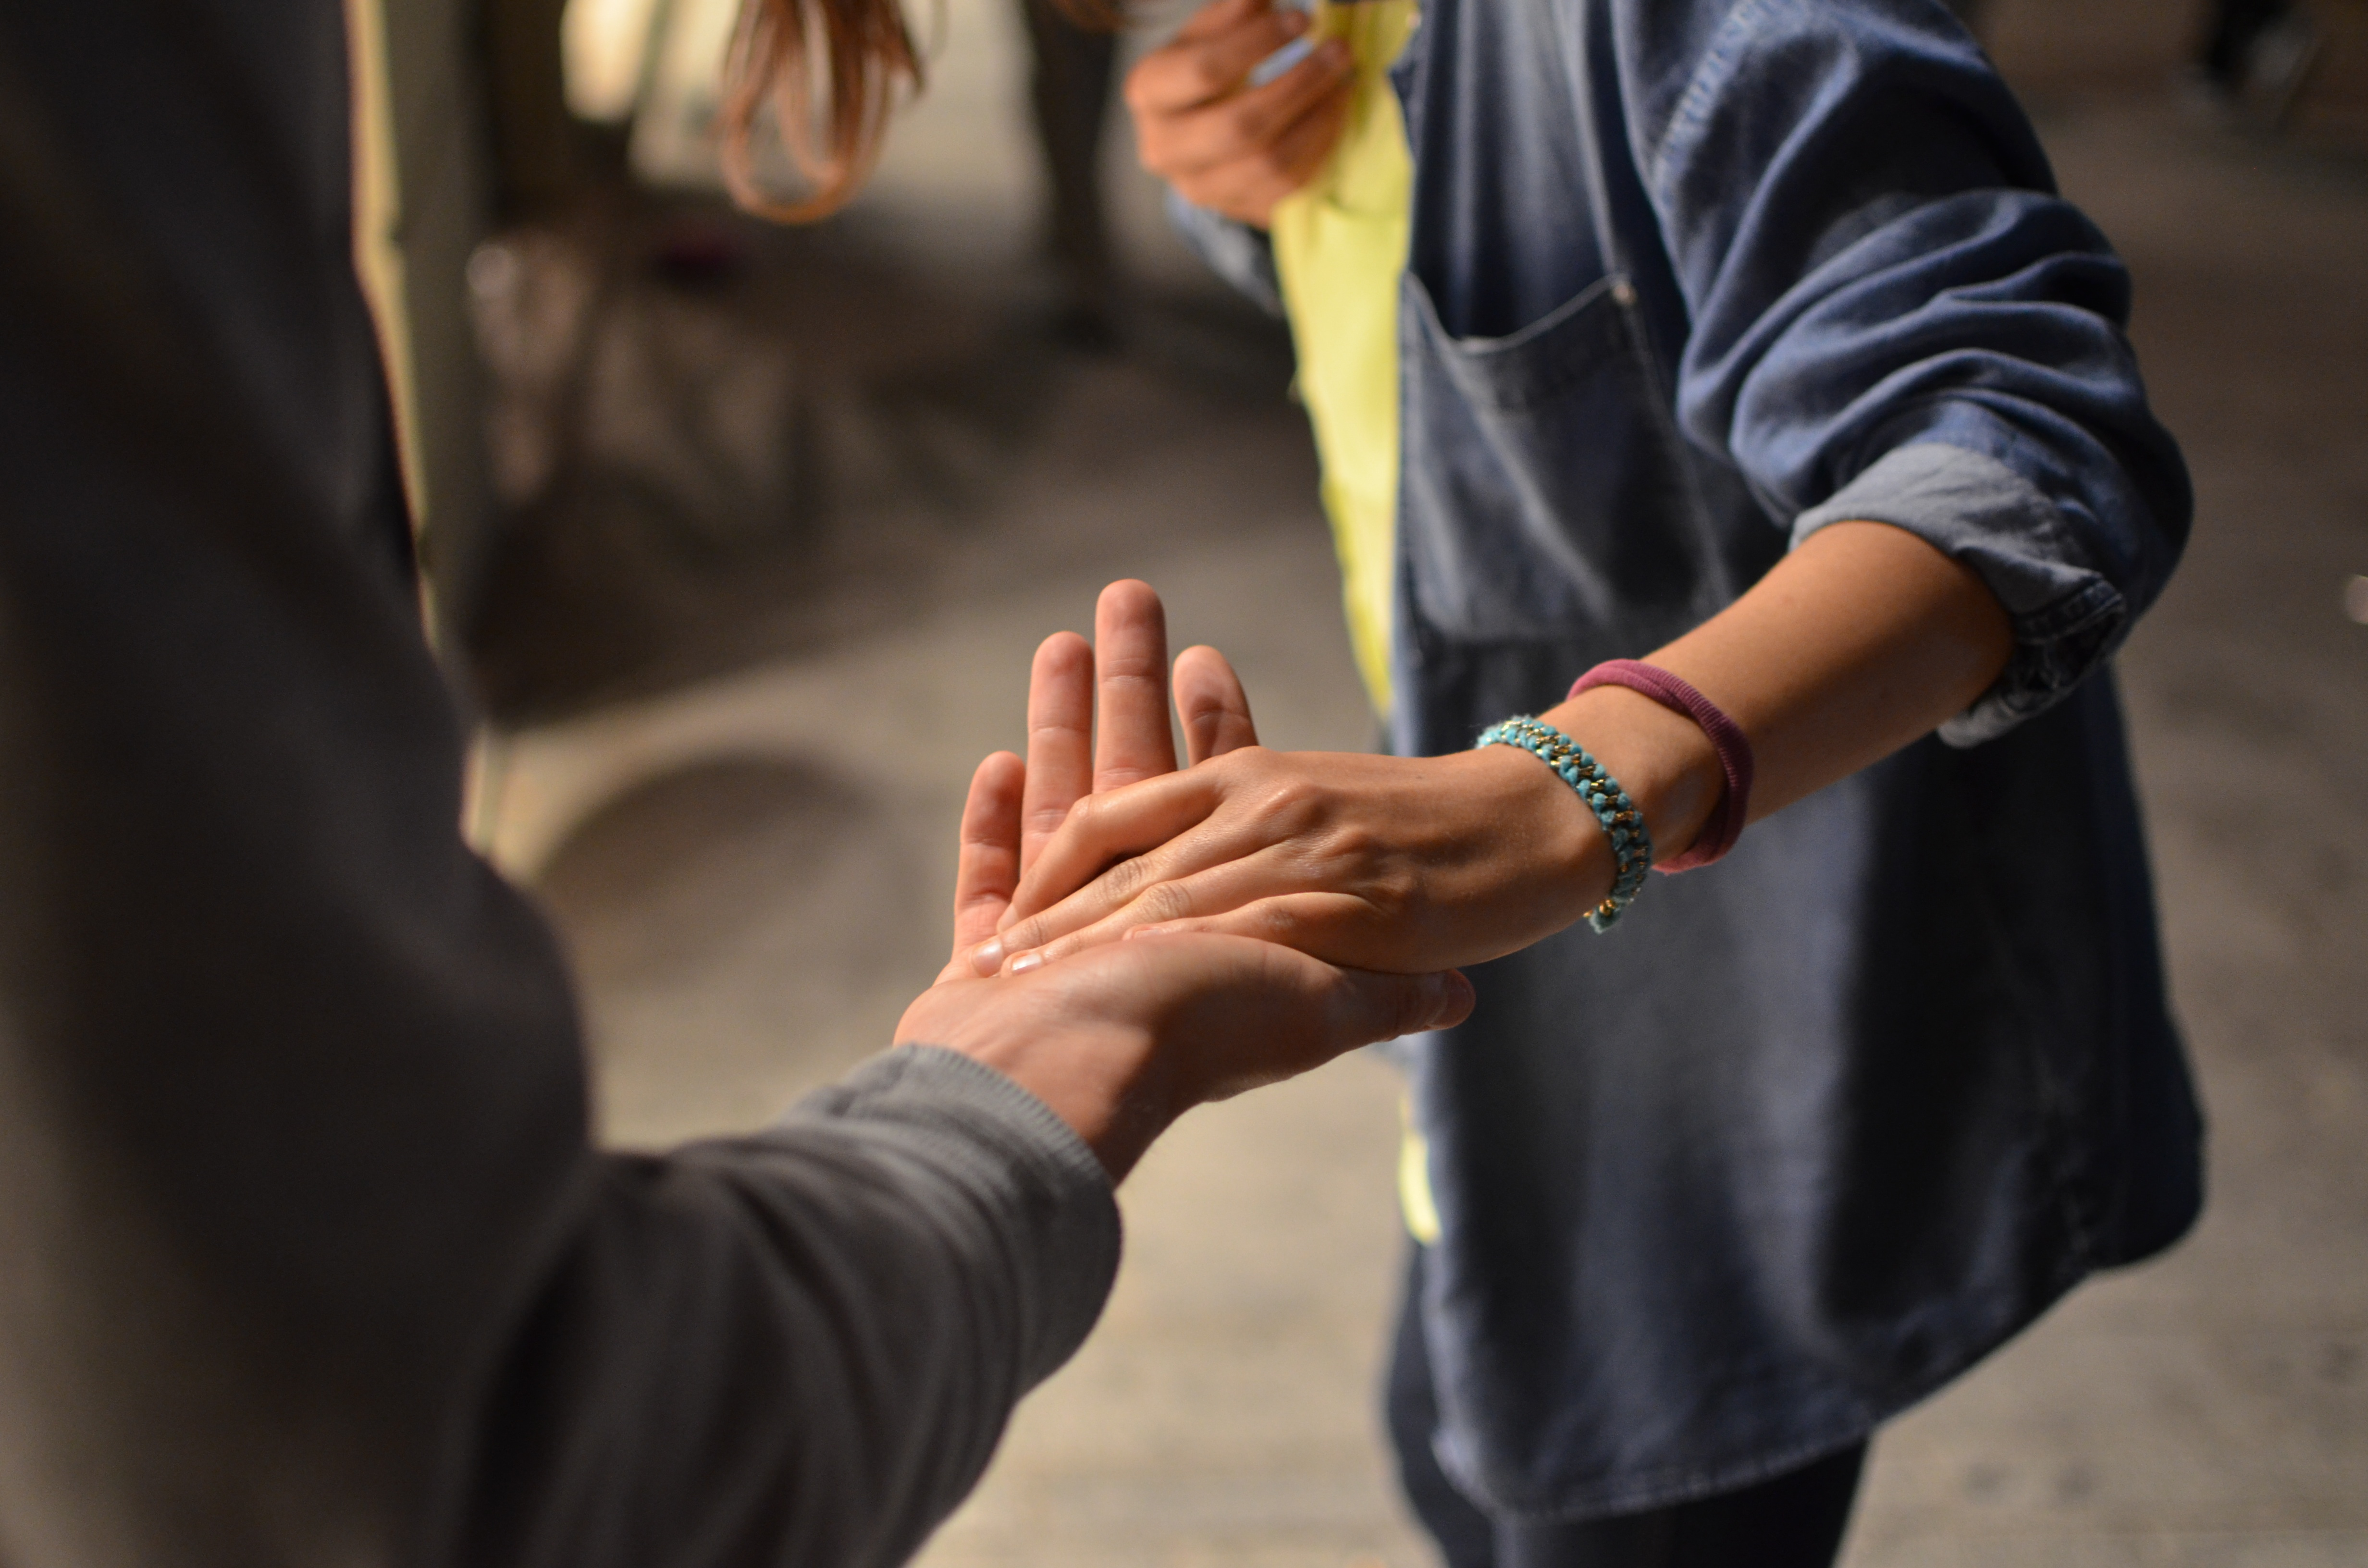 Person holding another person's hand